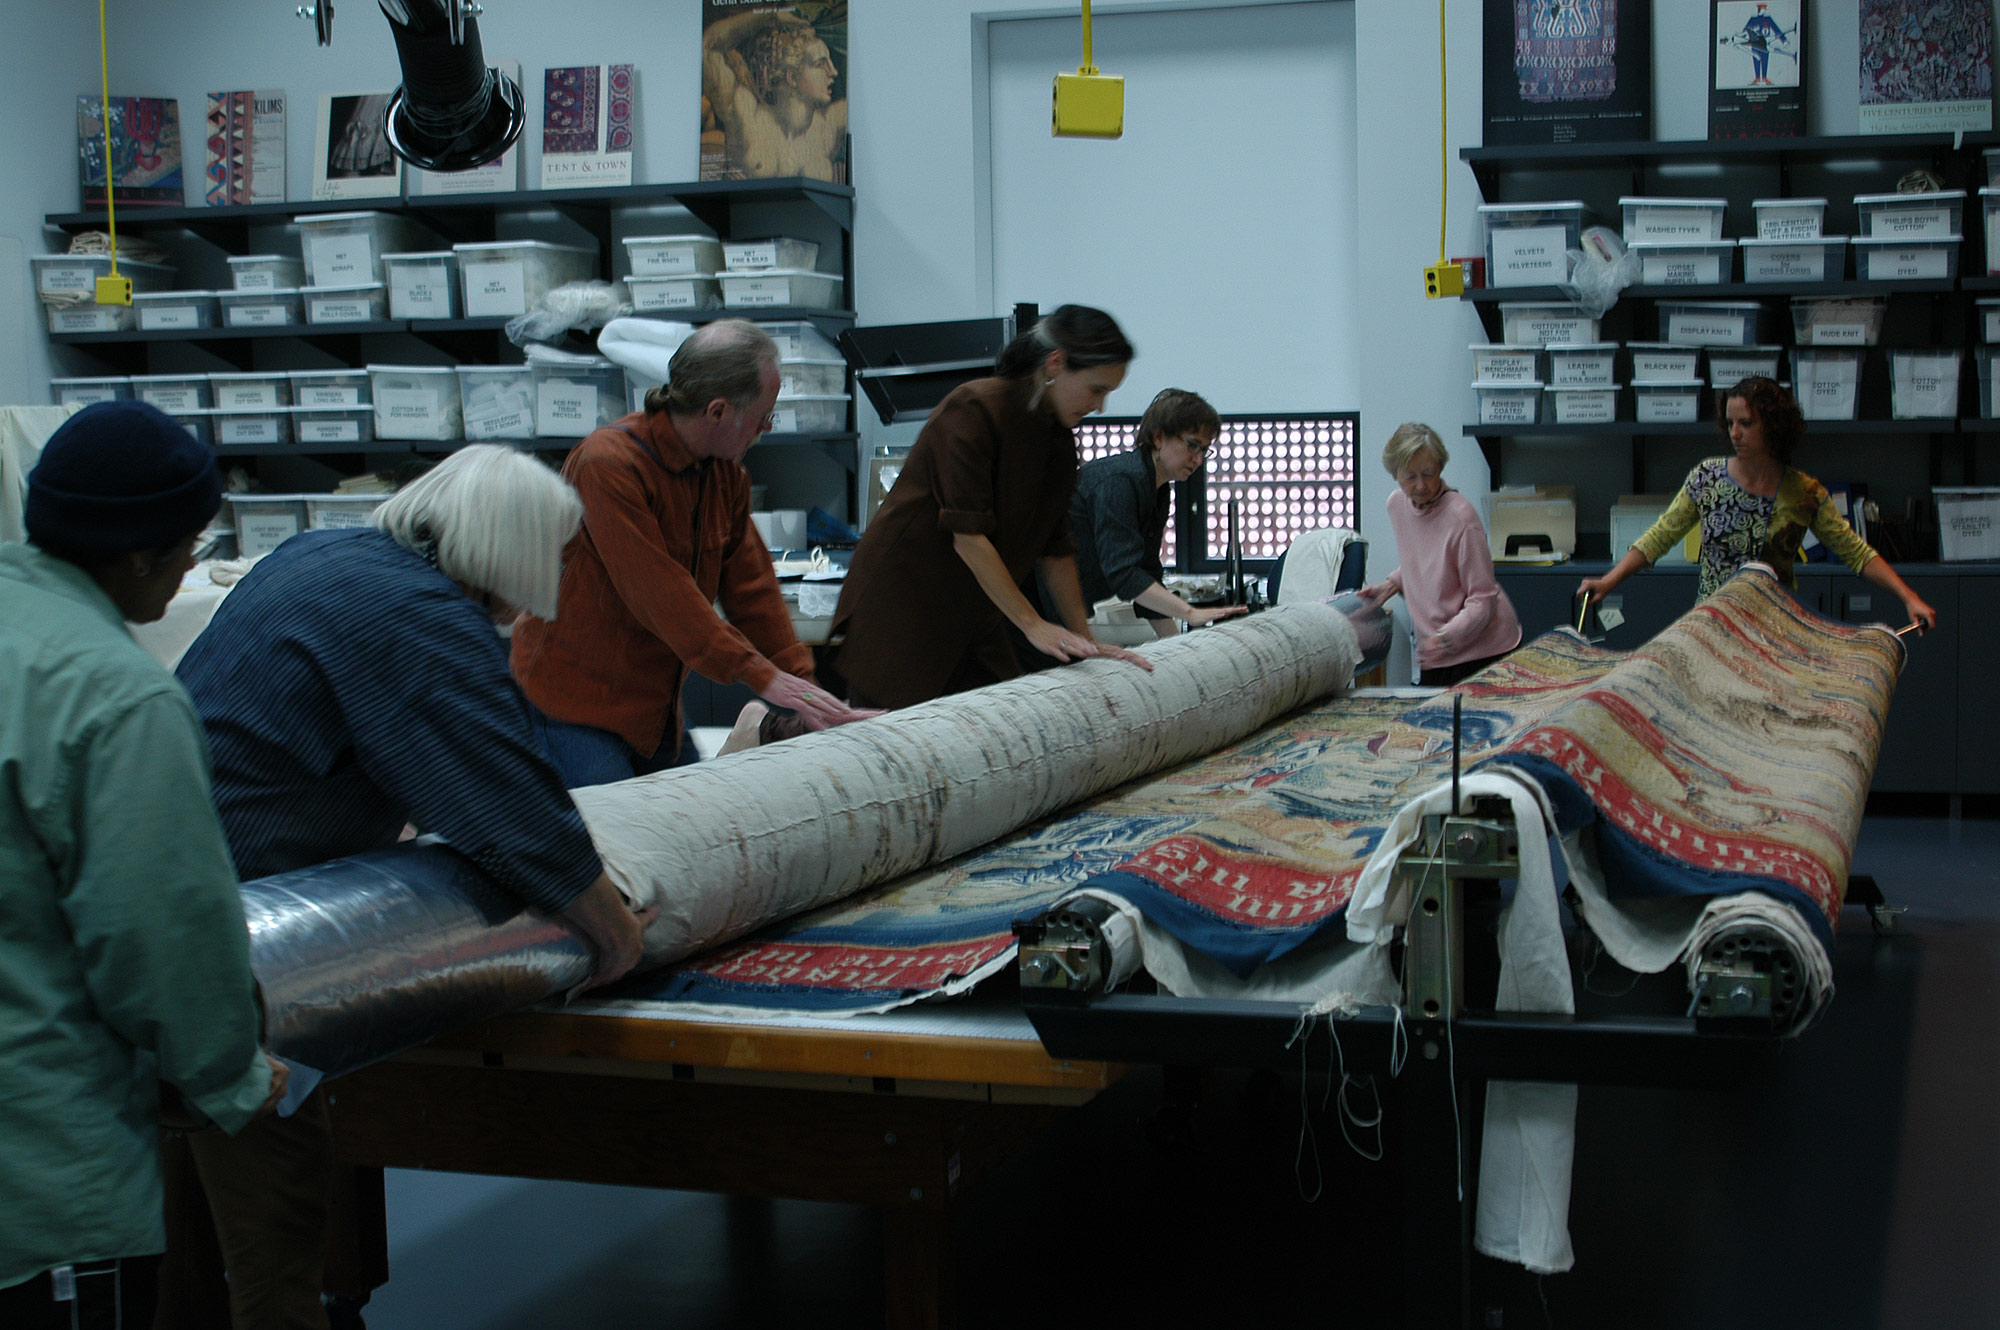 Seven staff members and volunteers work together to unfurl a monumental tapestry